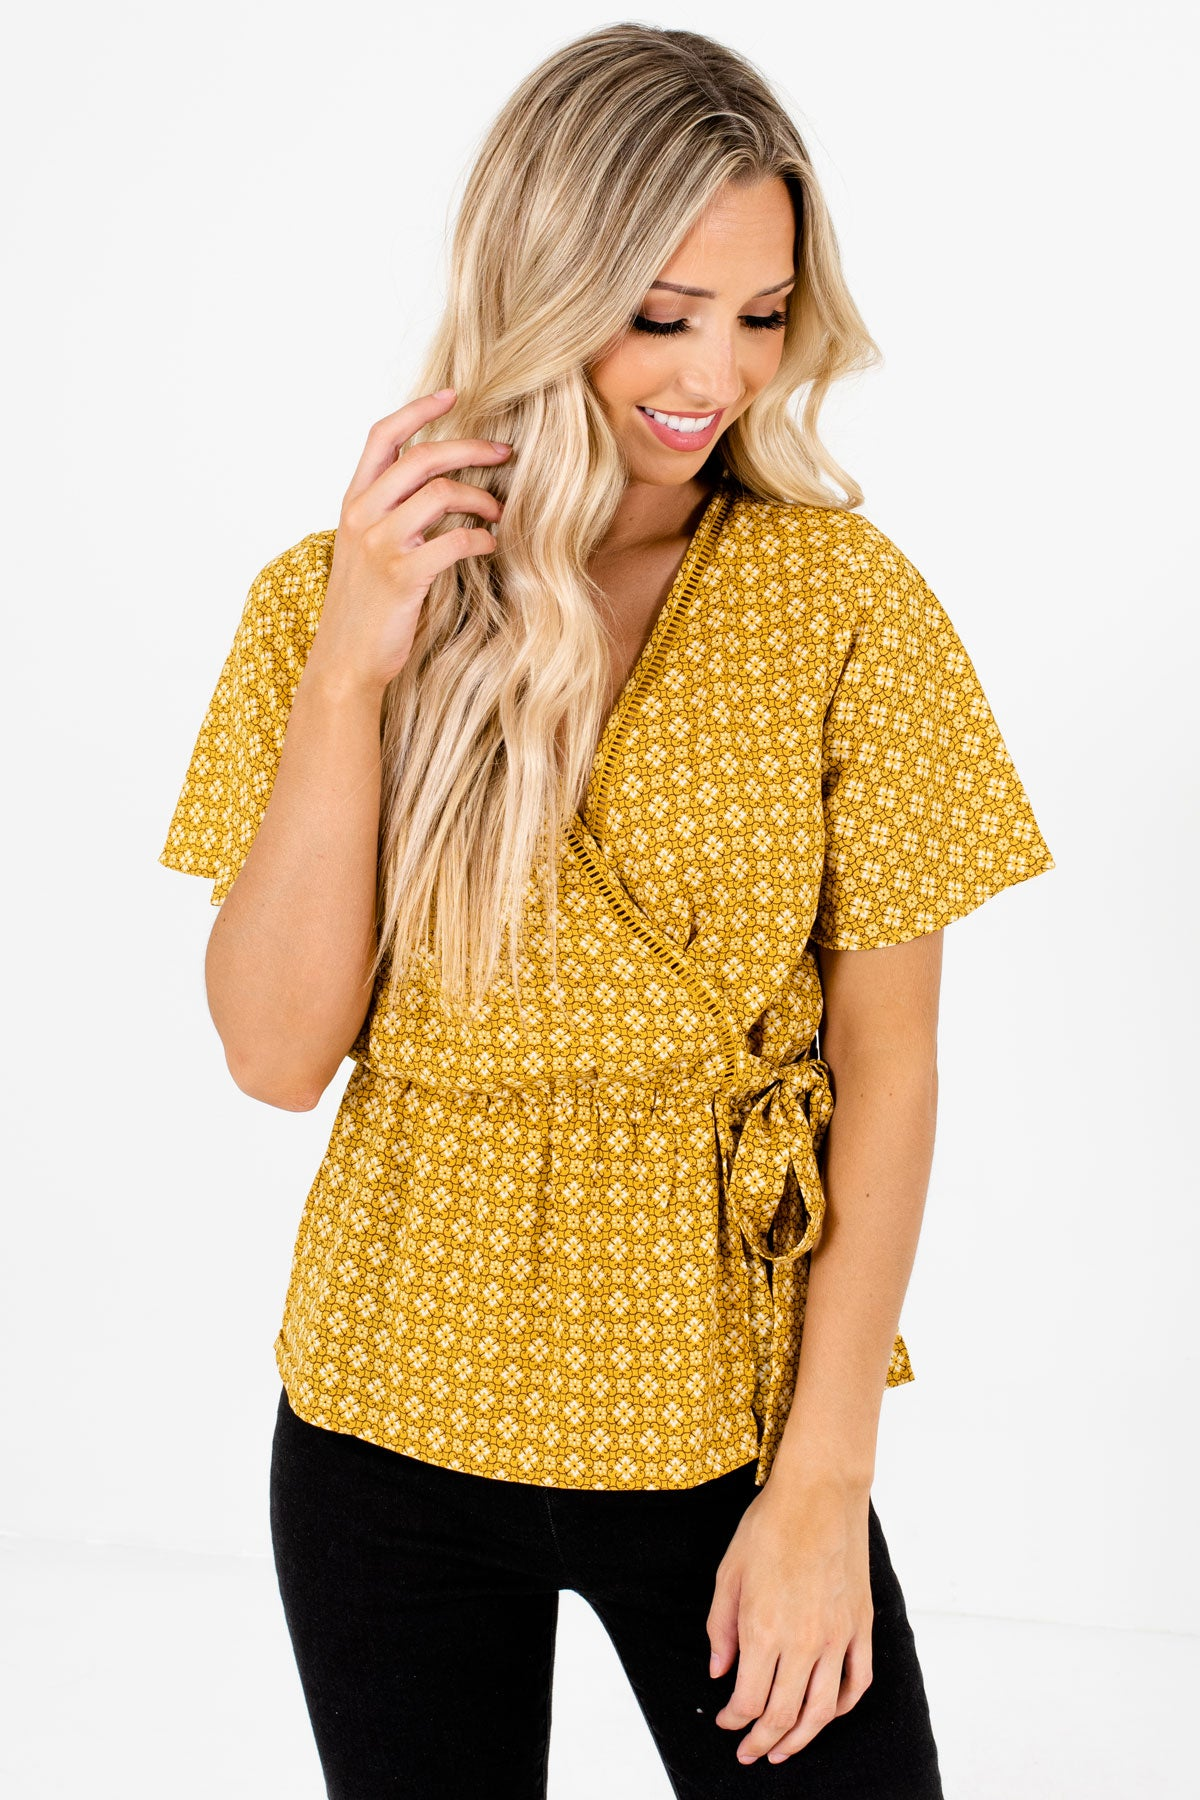 Mustard Yellow Multicolored Patterned Boutique Blouses for Women